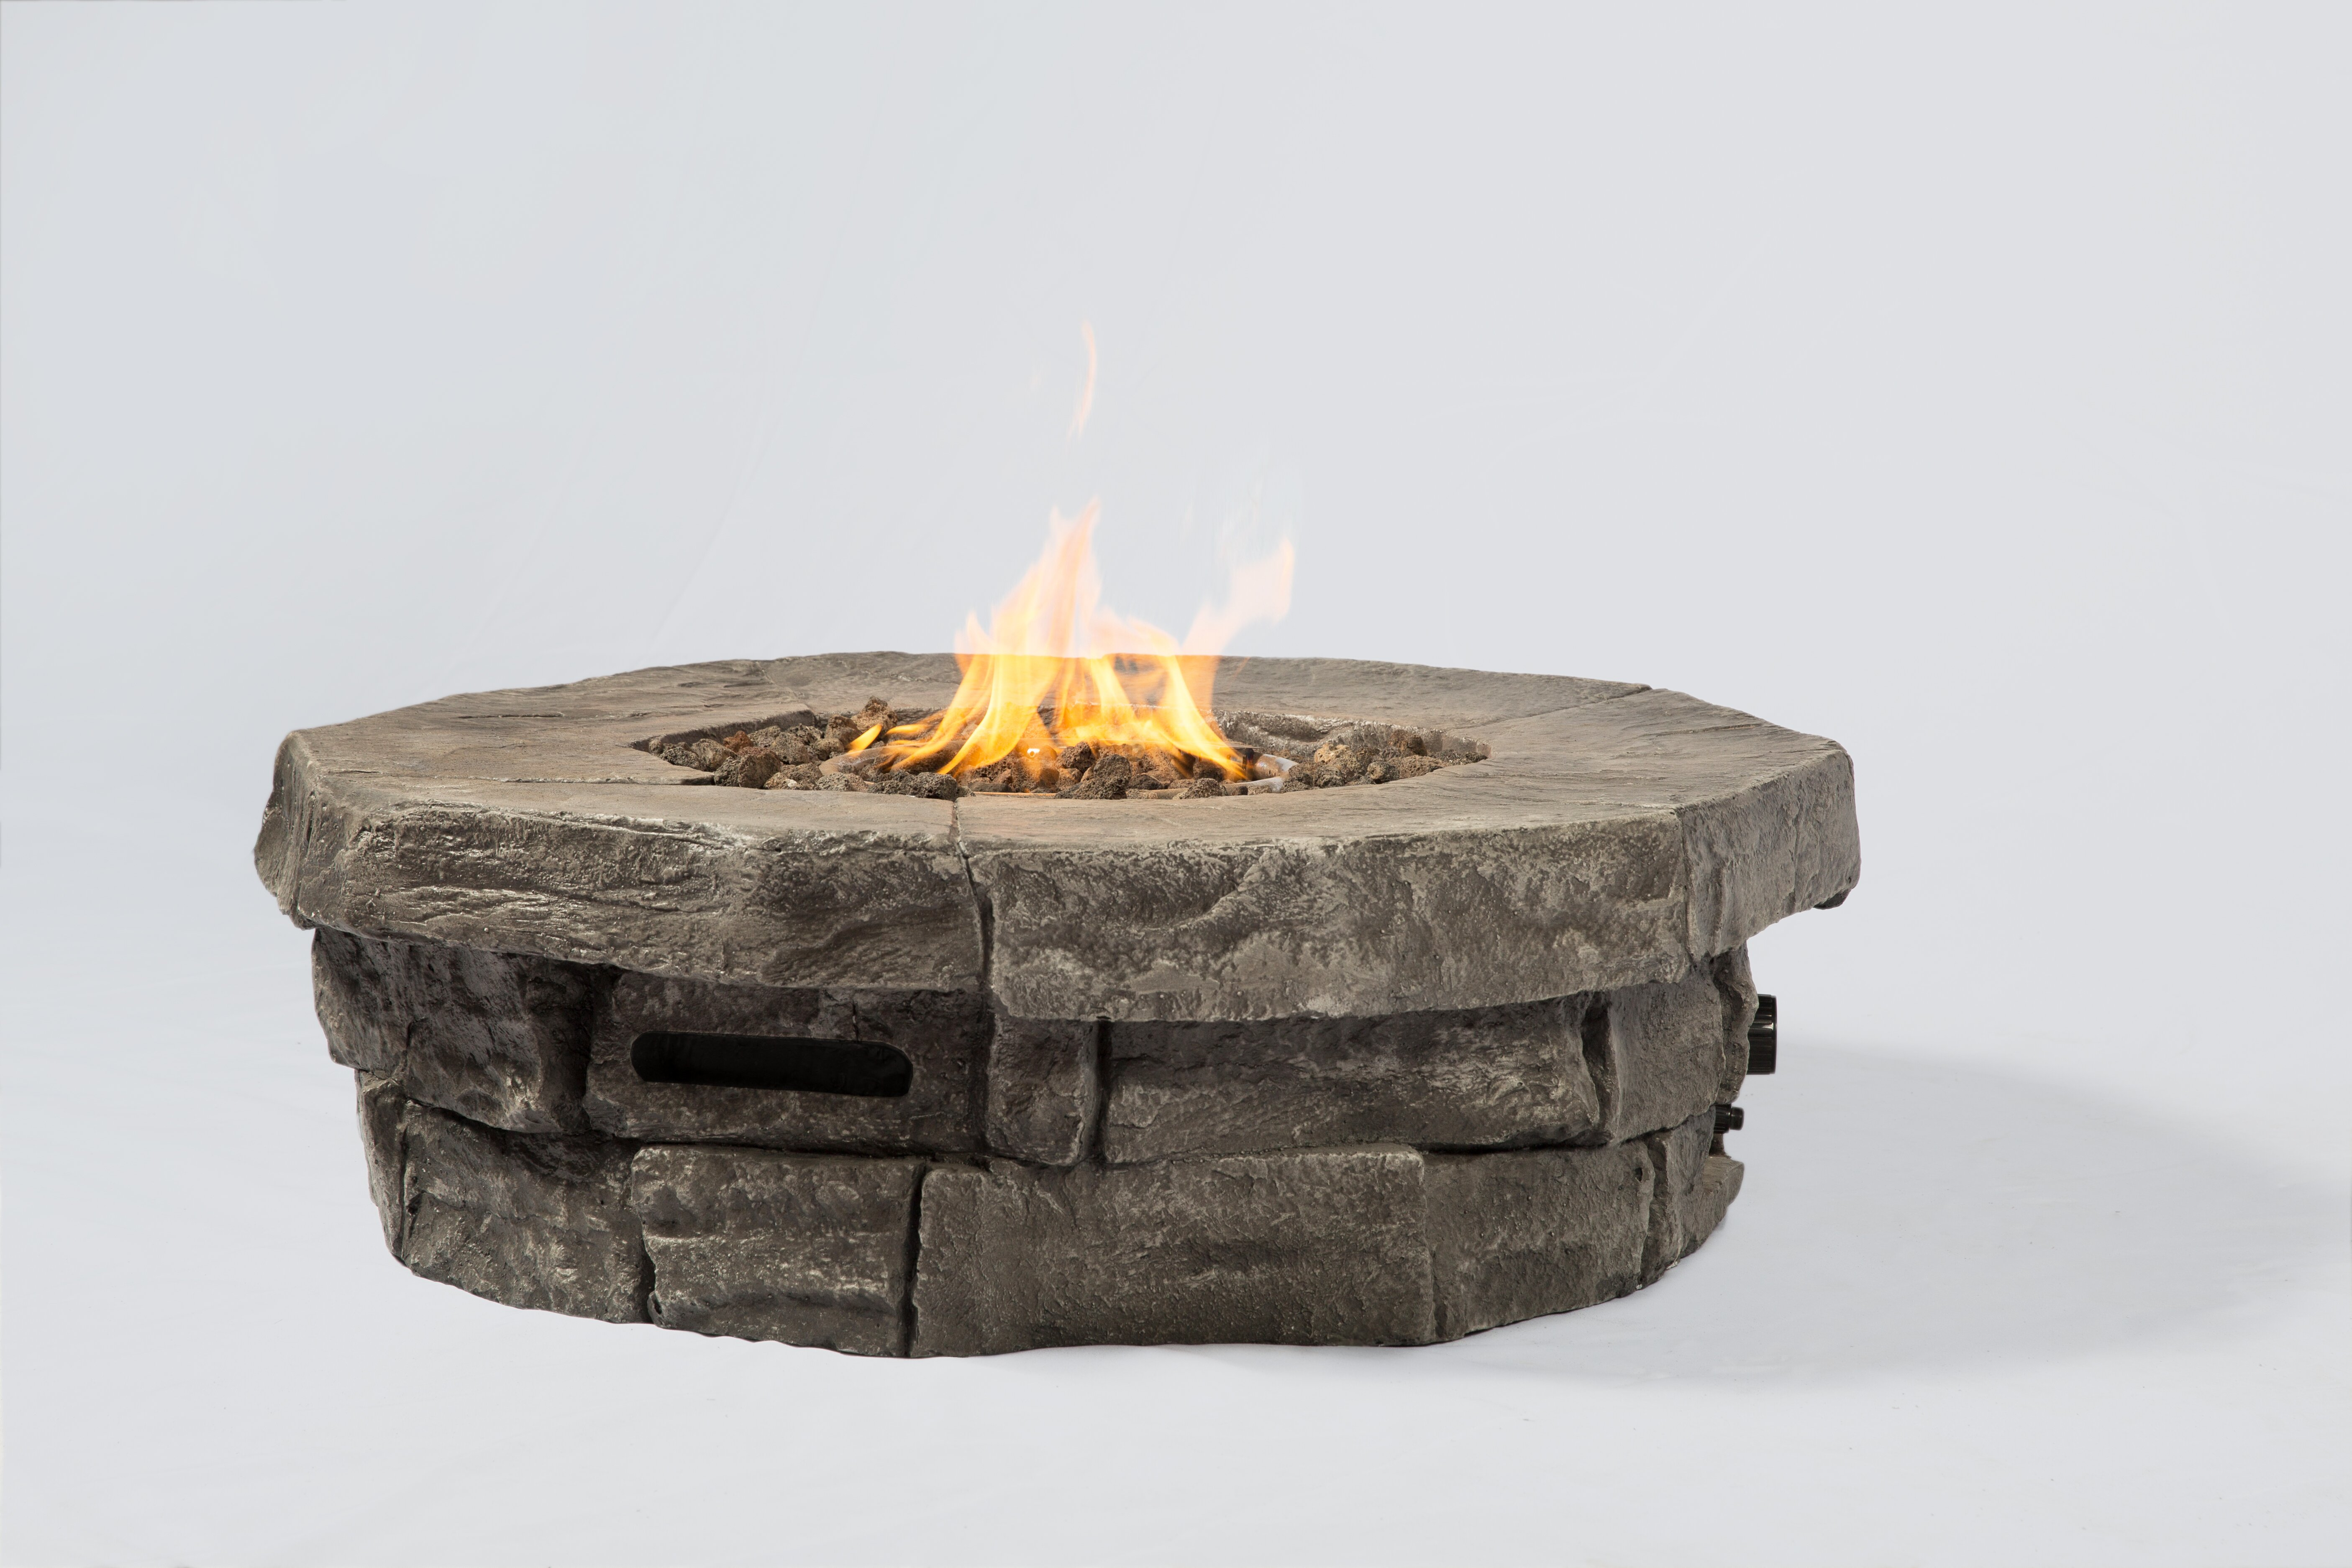 20lbs Slate Black Heat Resistant Natural Fire Stones For Fireplace Fire Pits Patio Lawn Garden Outdoor Heaters Fire Pits